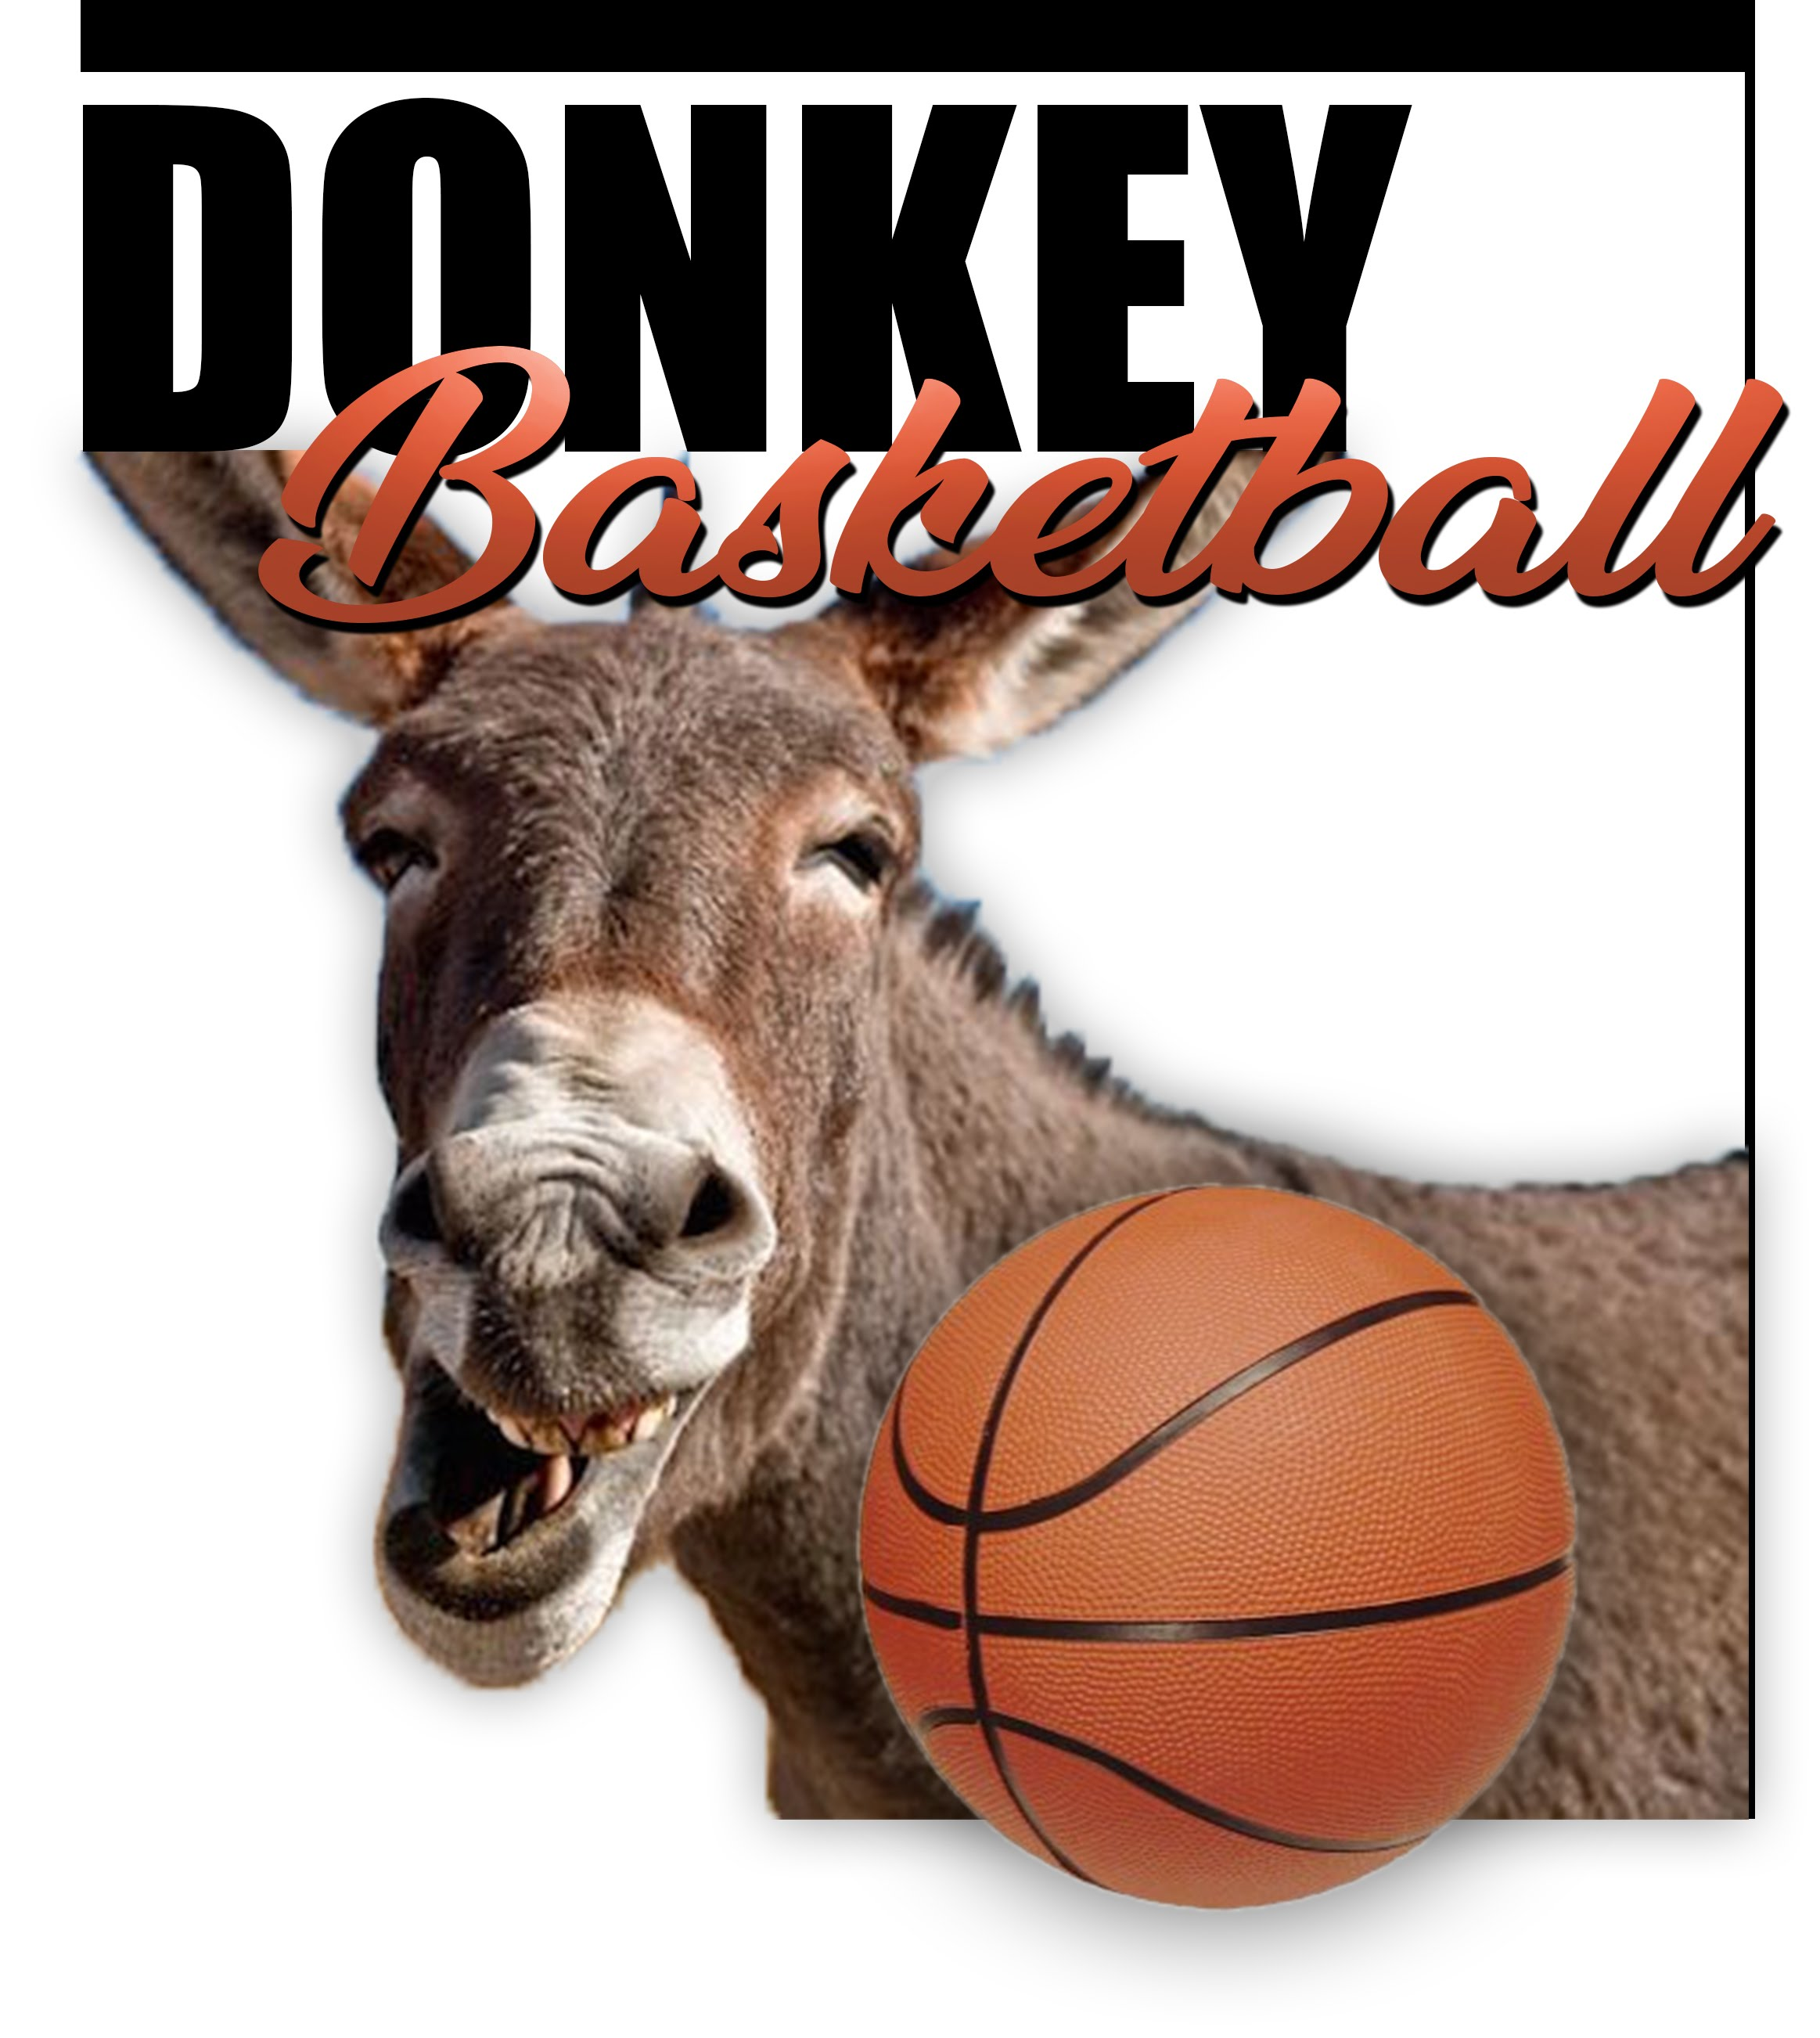 Donkey Basketball is coming to Foley!